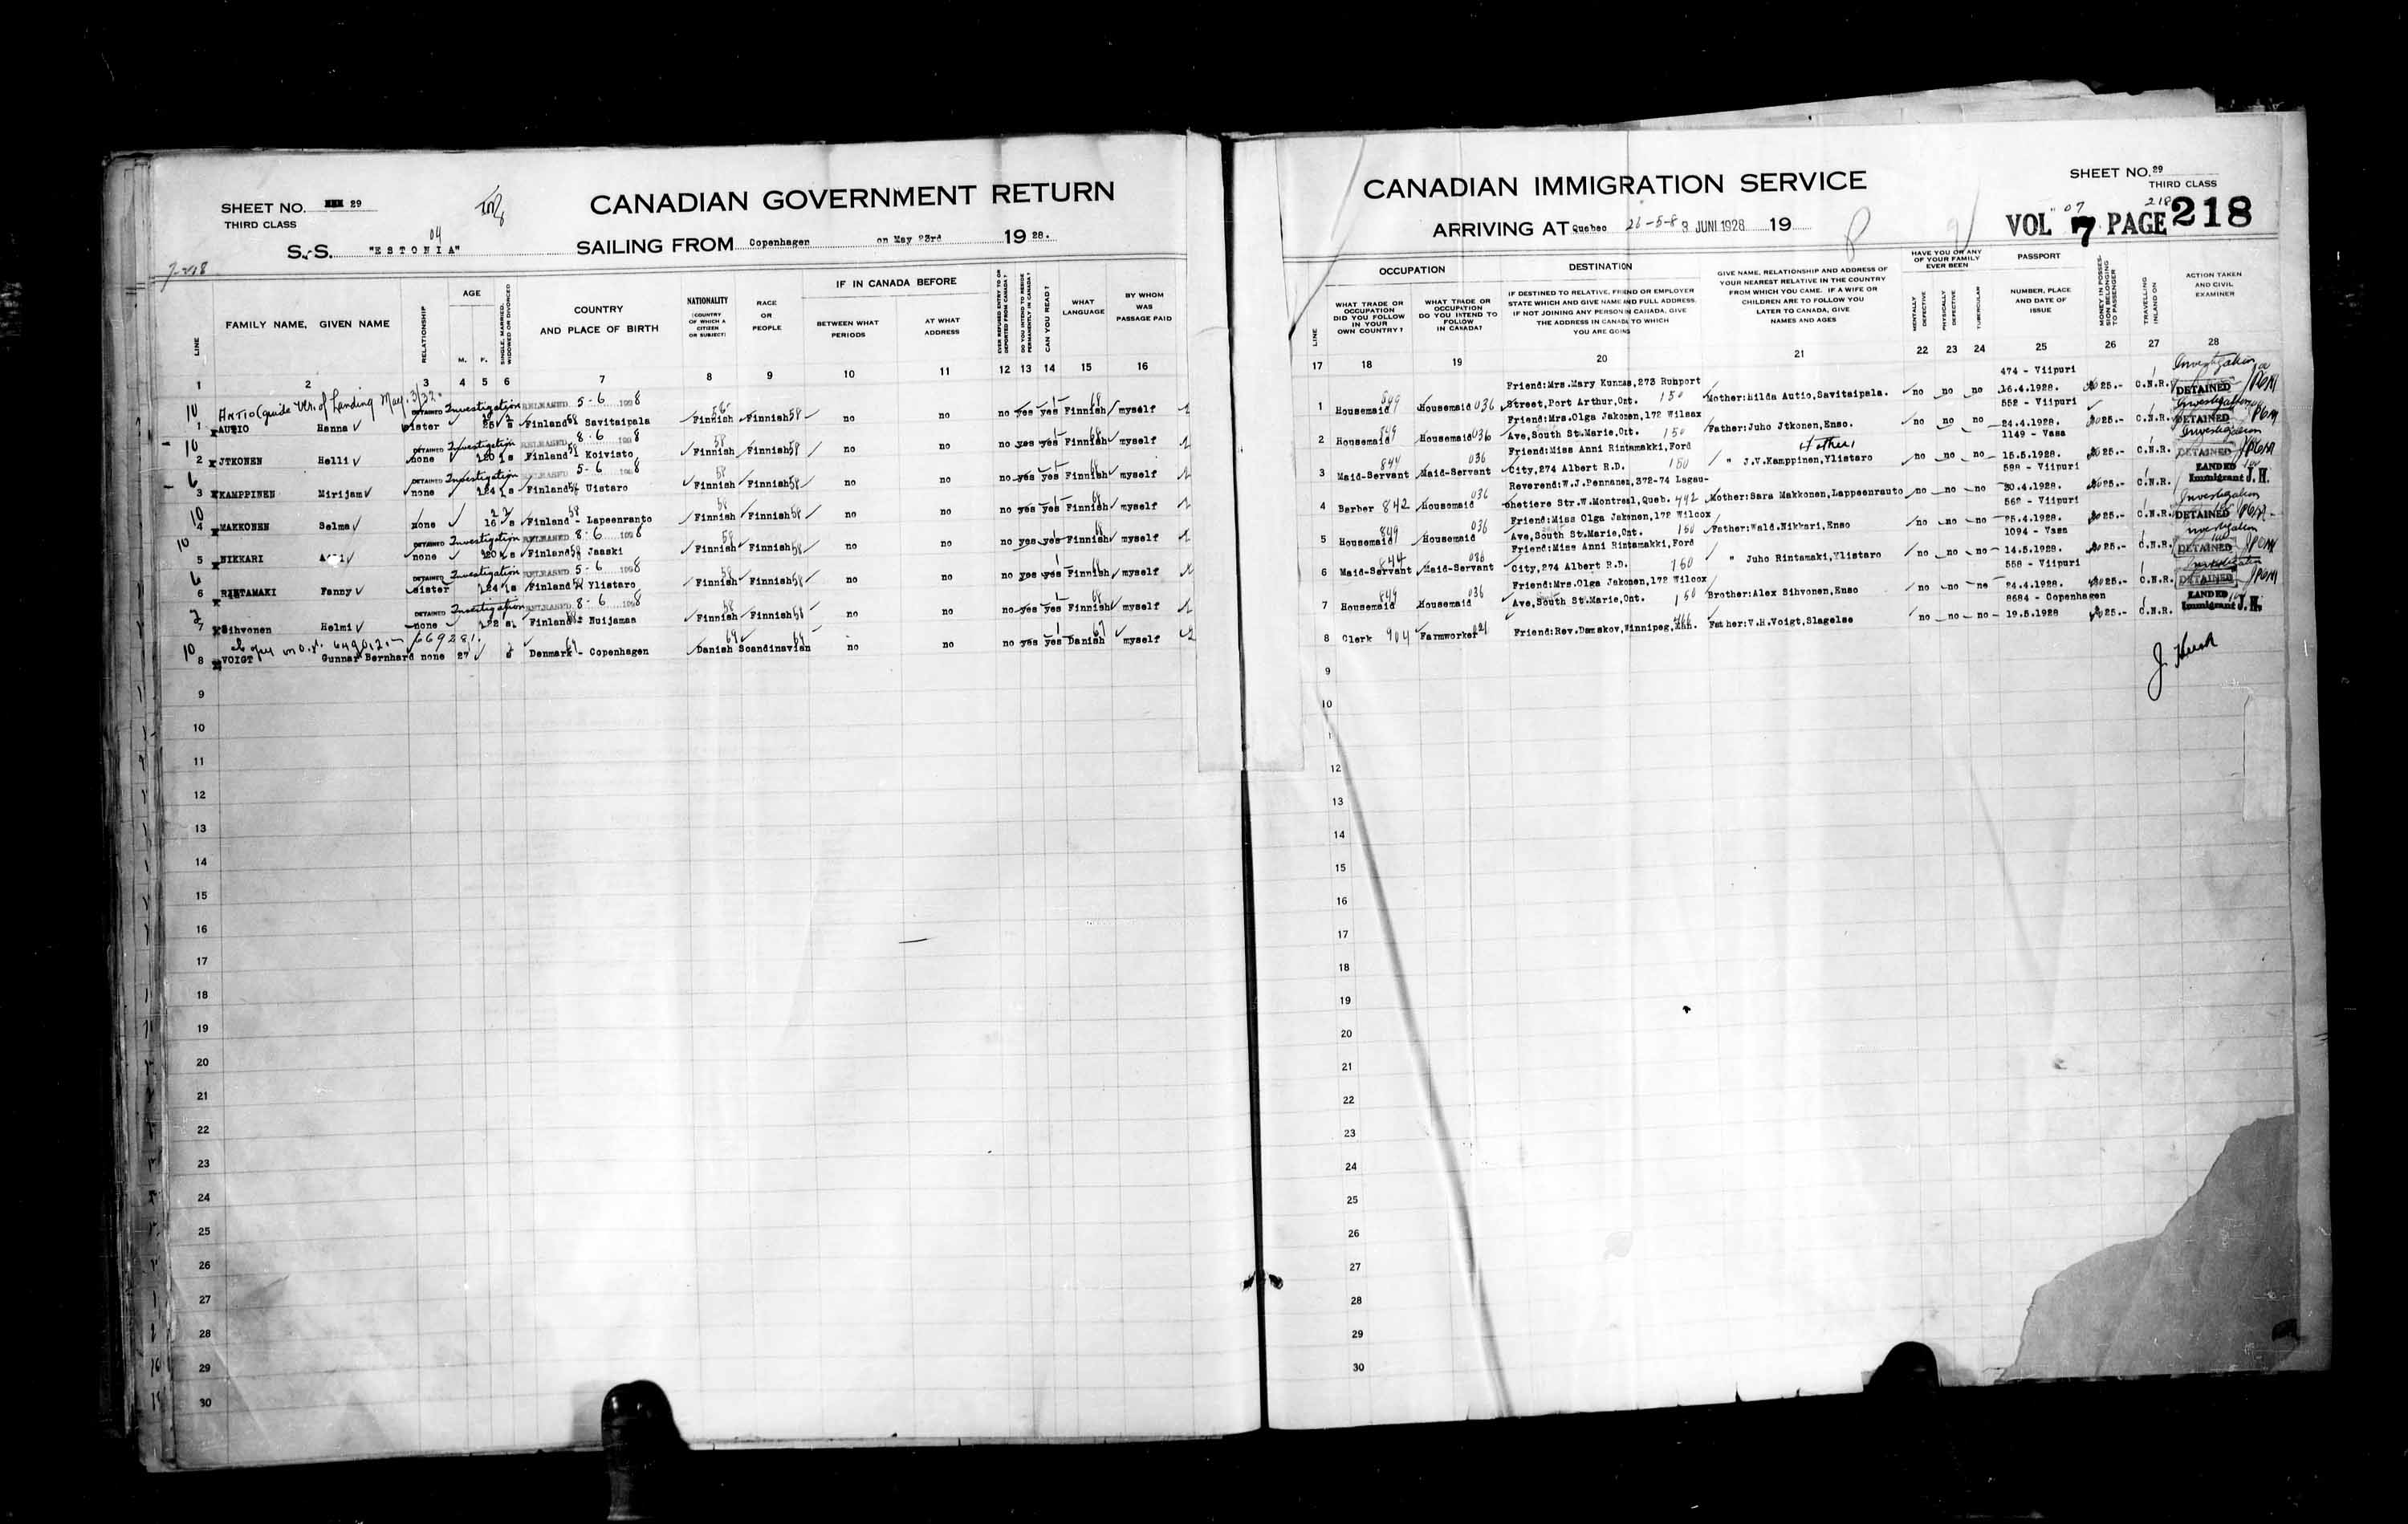 Title: Passenger Lists: Quebec City (1925-1935) - Mikan Number: 134839 - Microform: t-14742